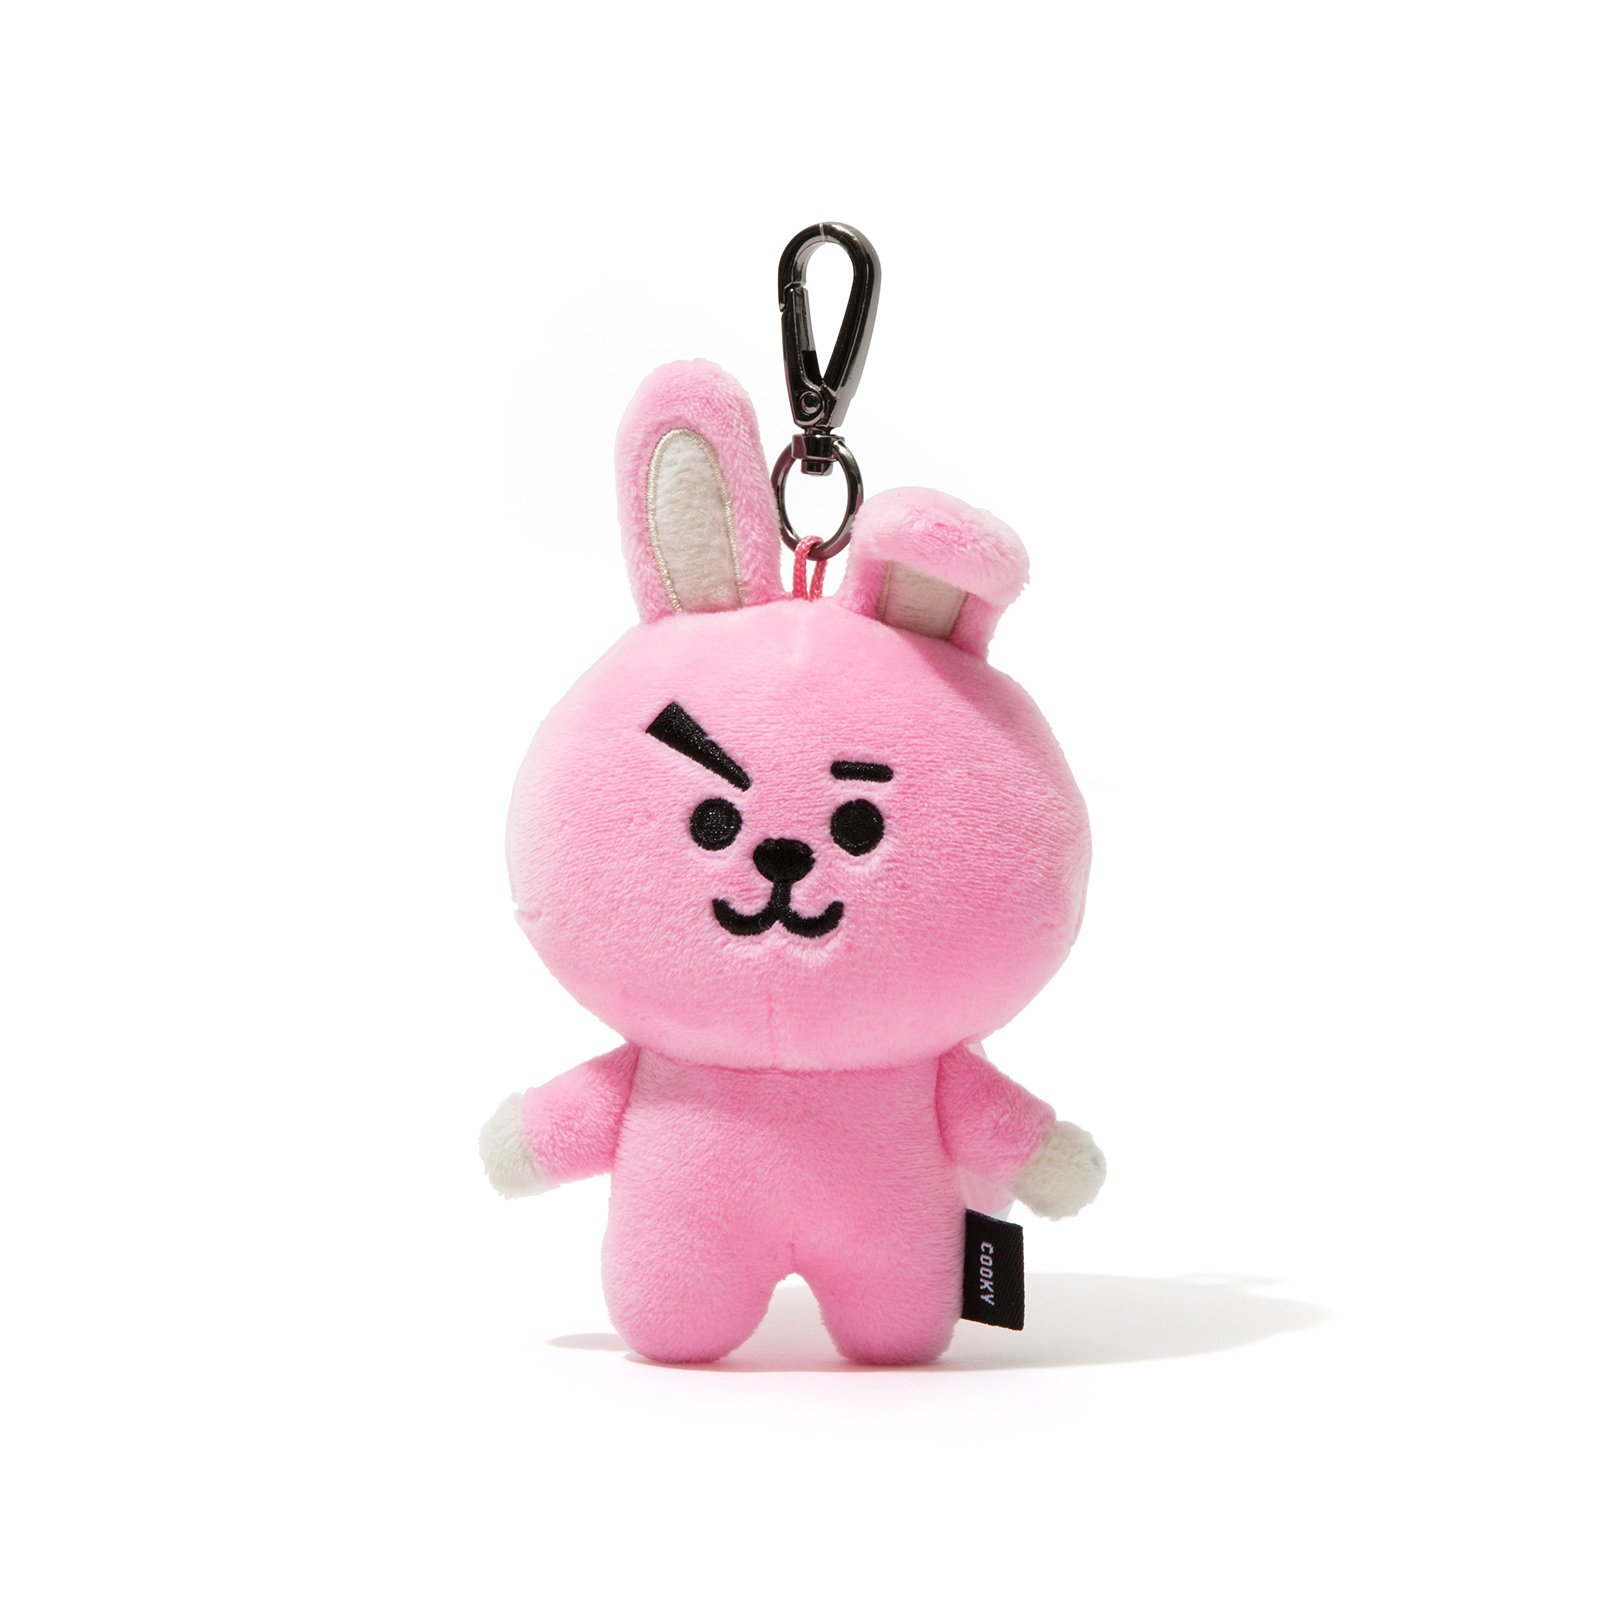 BT21 Cooky Pluch Keyring One Size Pink